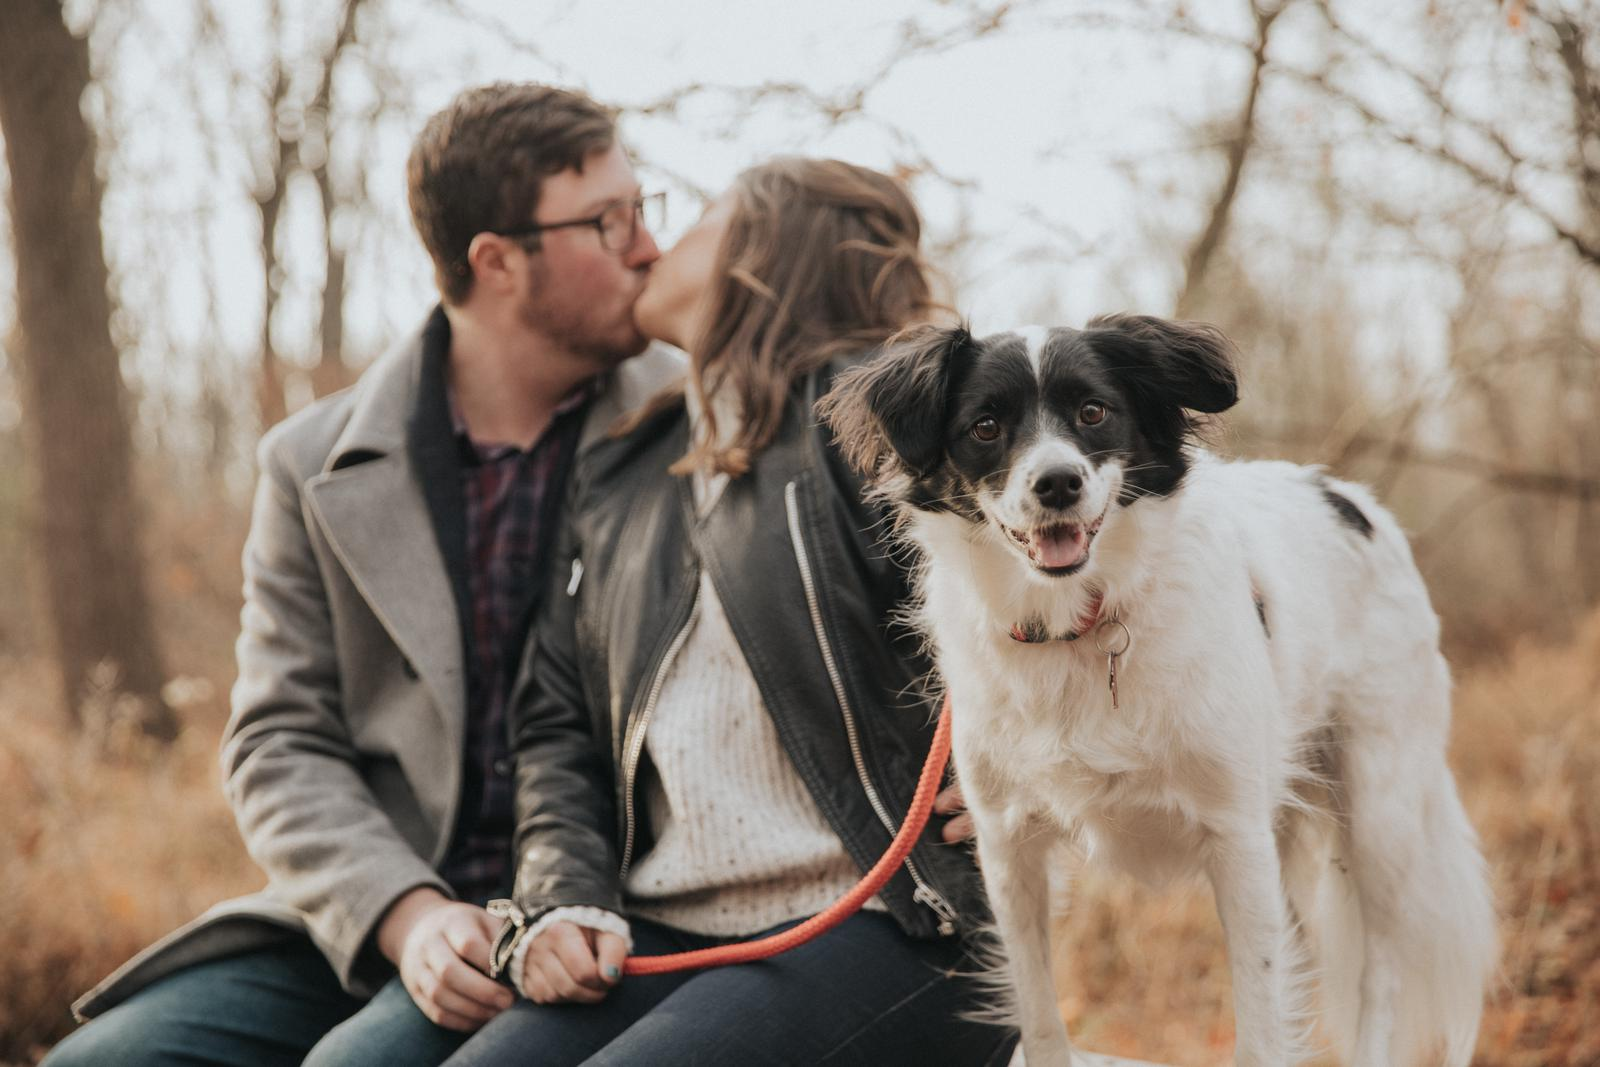 WRH Photography Woods Nature Dog Puppy Pet Engagement Session 001.JPG